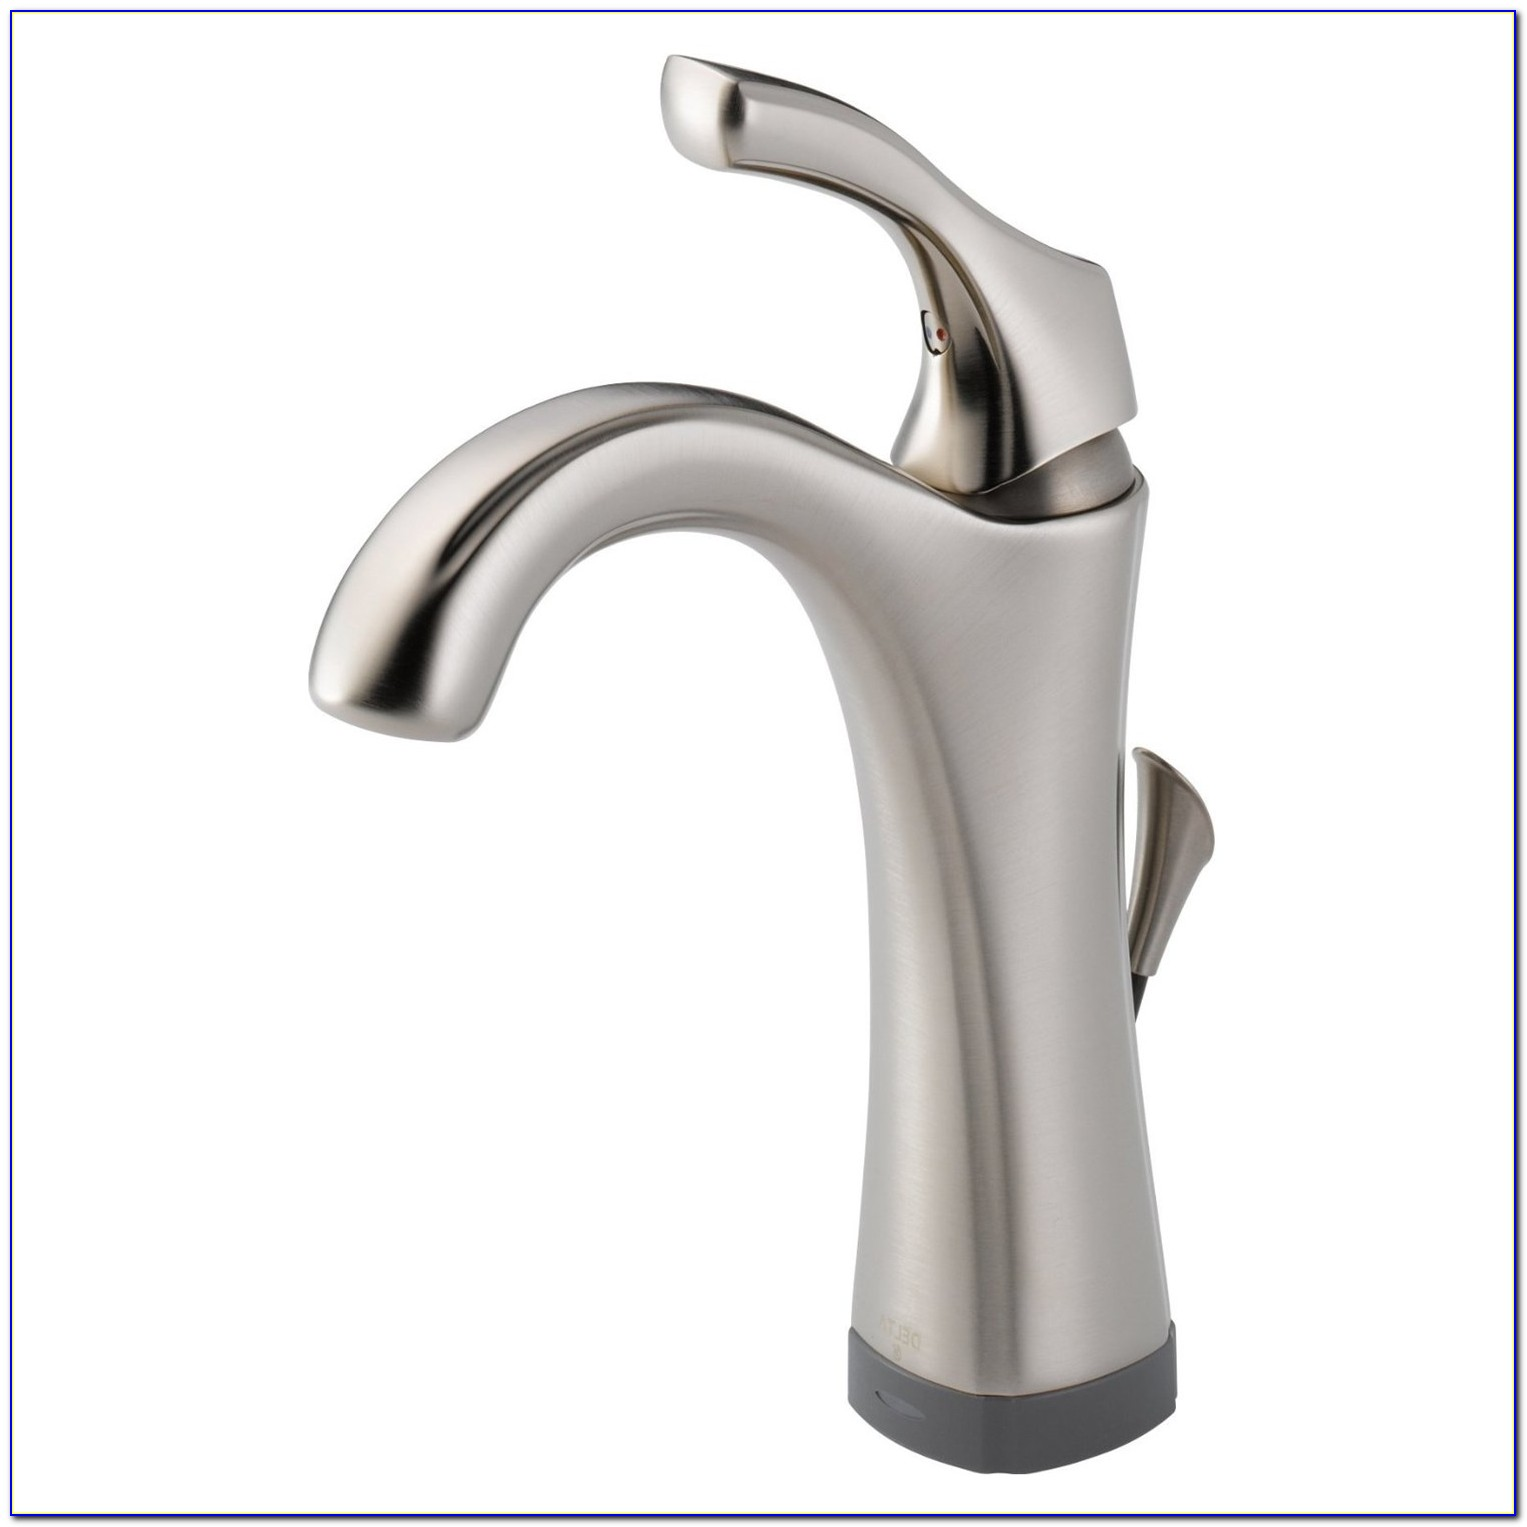 Troubleshooting Delta Addison Touch Faucet